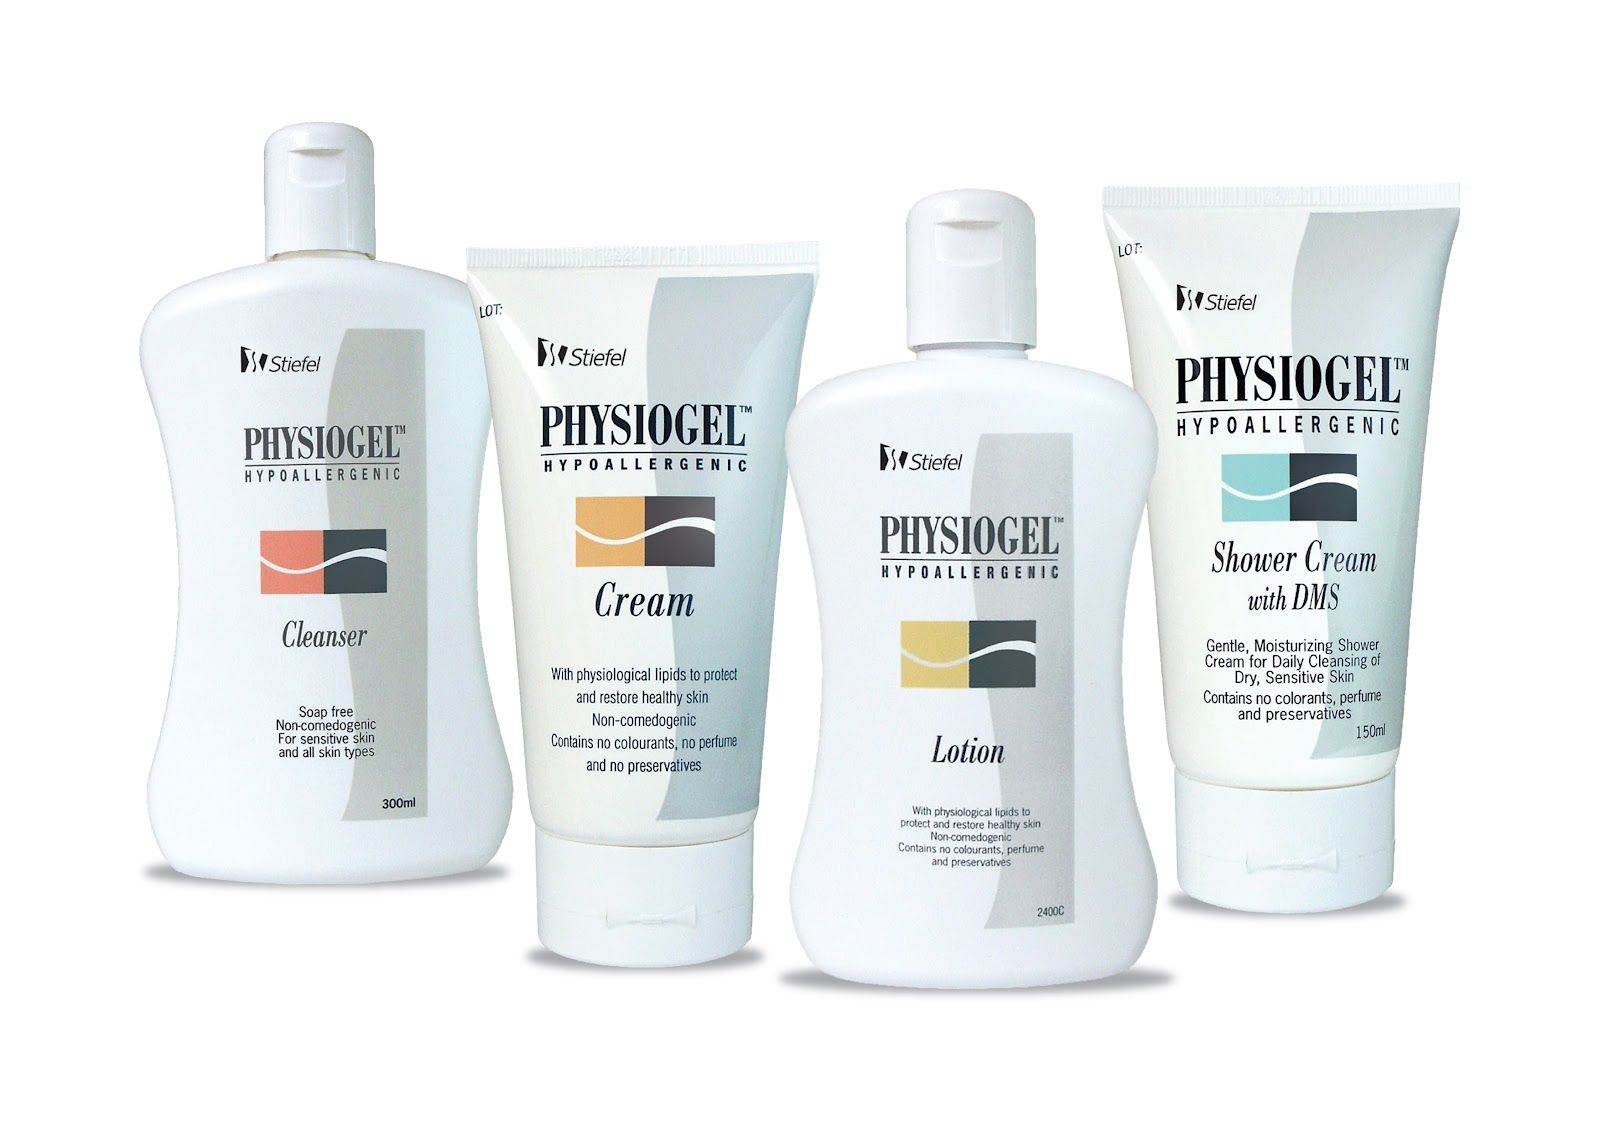 physiogel hypoallergenic face cleanser for more